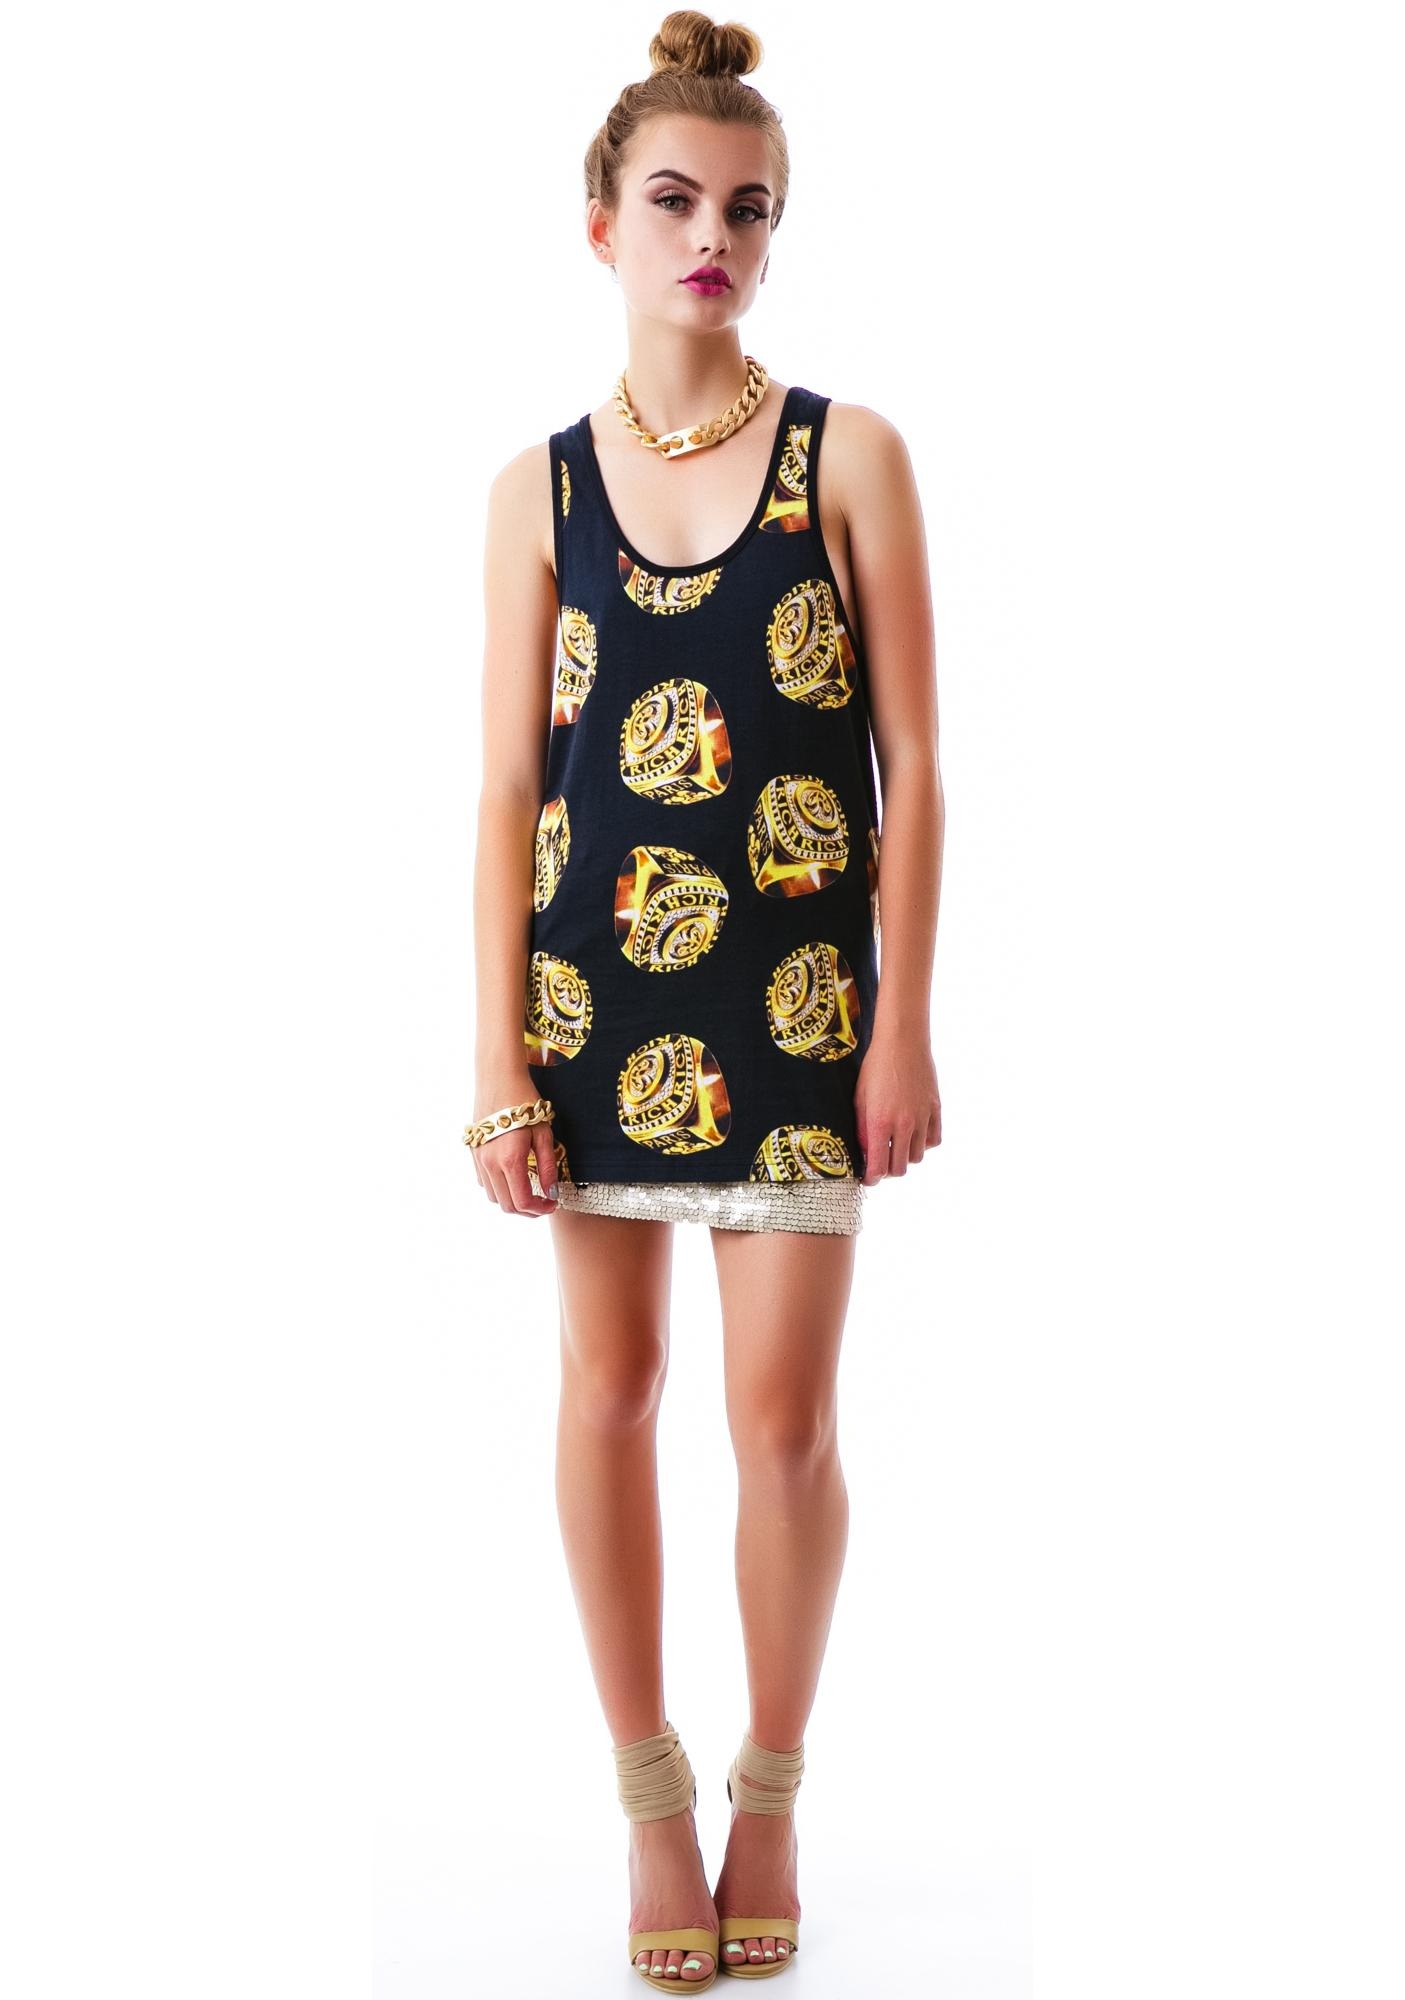 Joyrich Rich Champion Tank